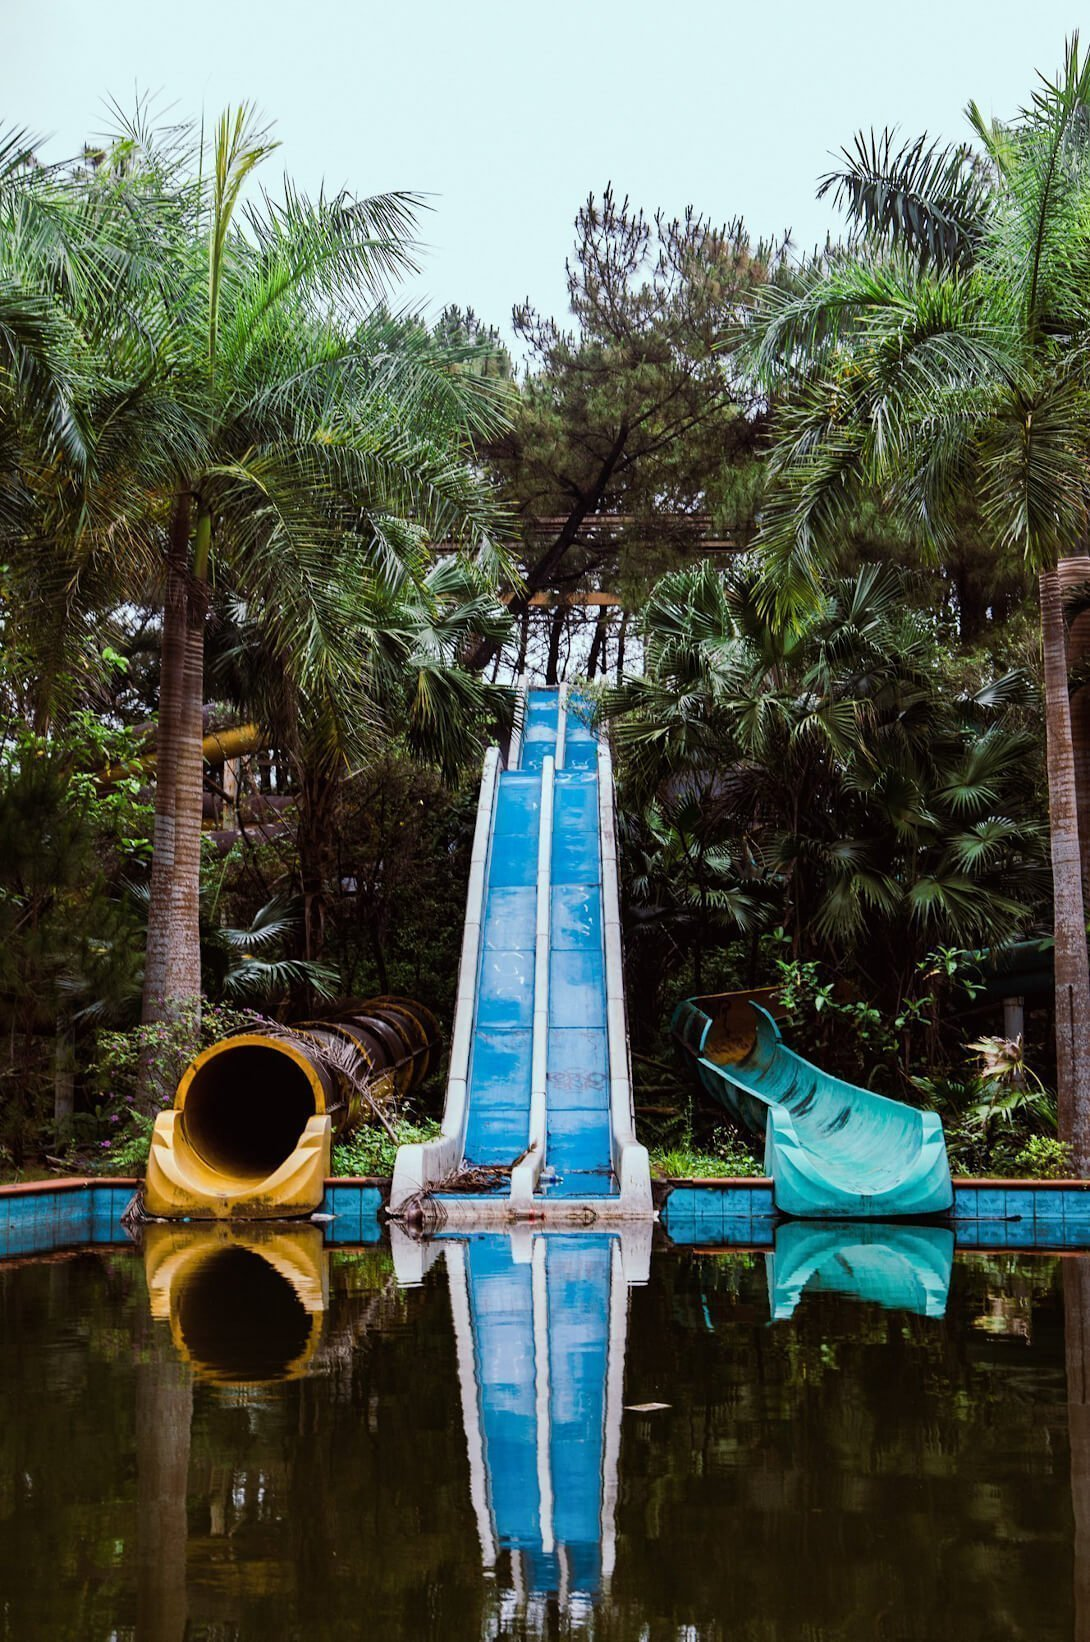 14 Photos That Will Make You Never Want To Visit The Abandoned Waterpark Hue Vietnam Local Nomads